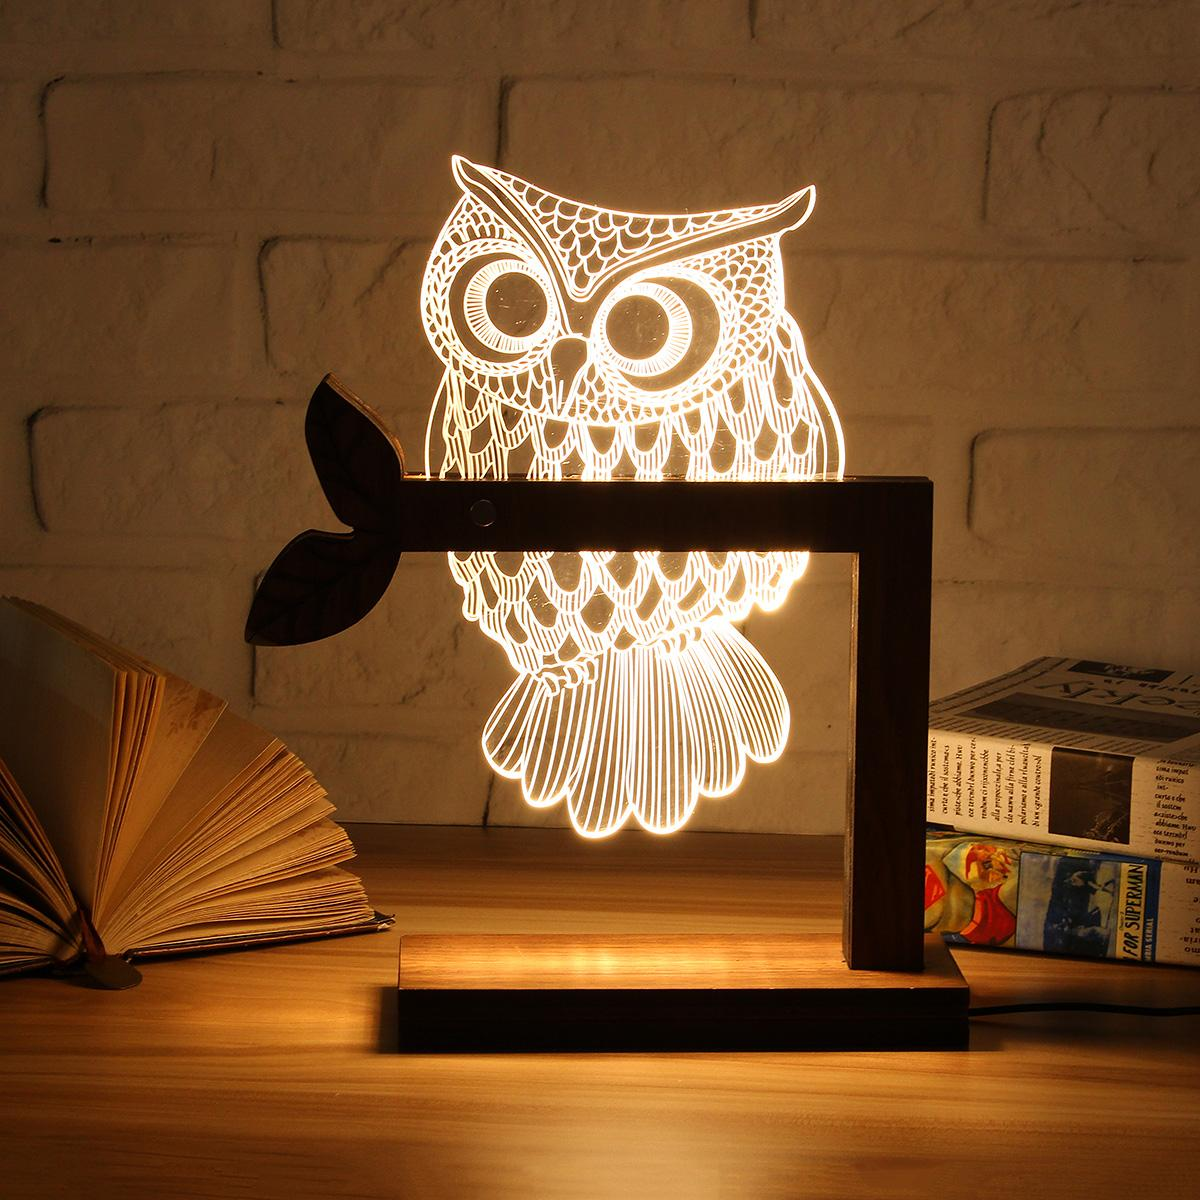 Adjustable OWL Shaped 3D Wooden Stand Lamp Night Light Bedroom Table Desk Lamp Warm White Lighting Plug Connector Home Decor adjustable owl shaped 3d wooden stand lamp night light bedroom table desk lamp warm white lighting plug connector home decor